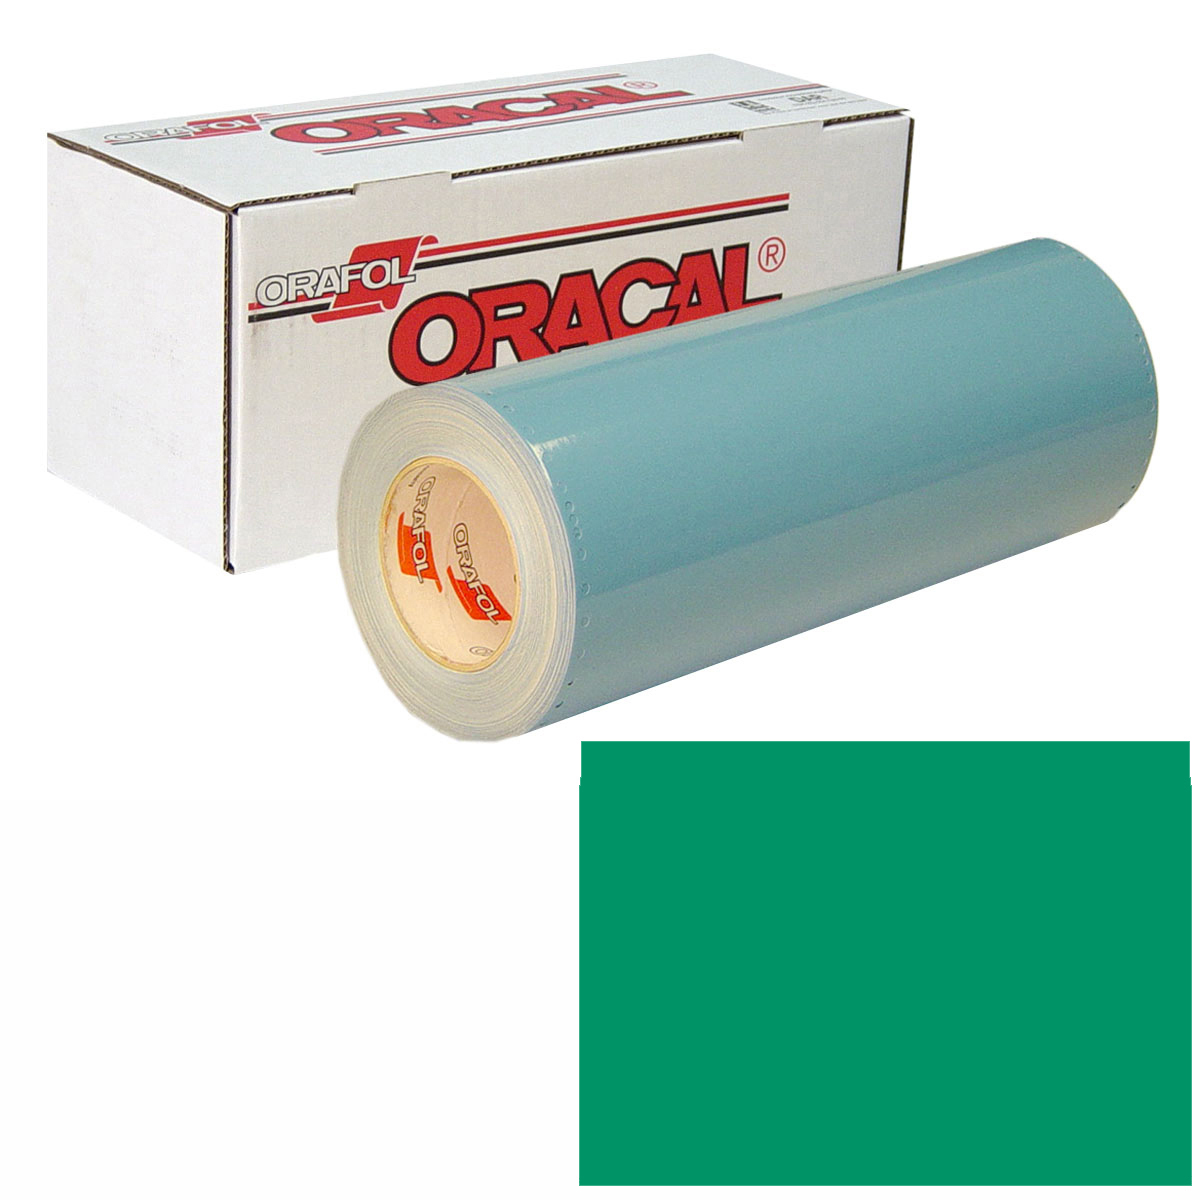 ORACAL 751 Unp 48in X 10yd 061 Green